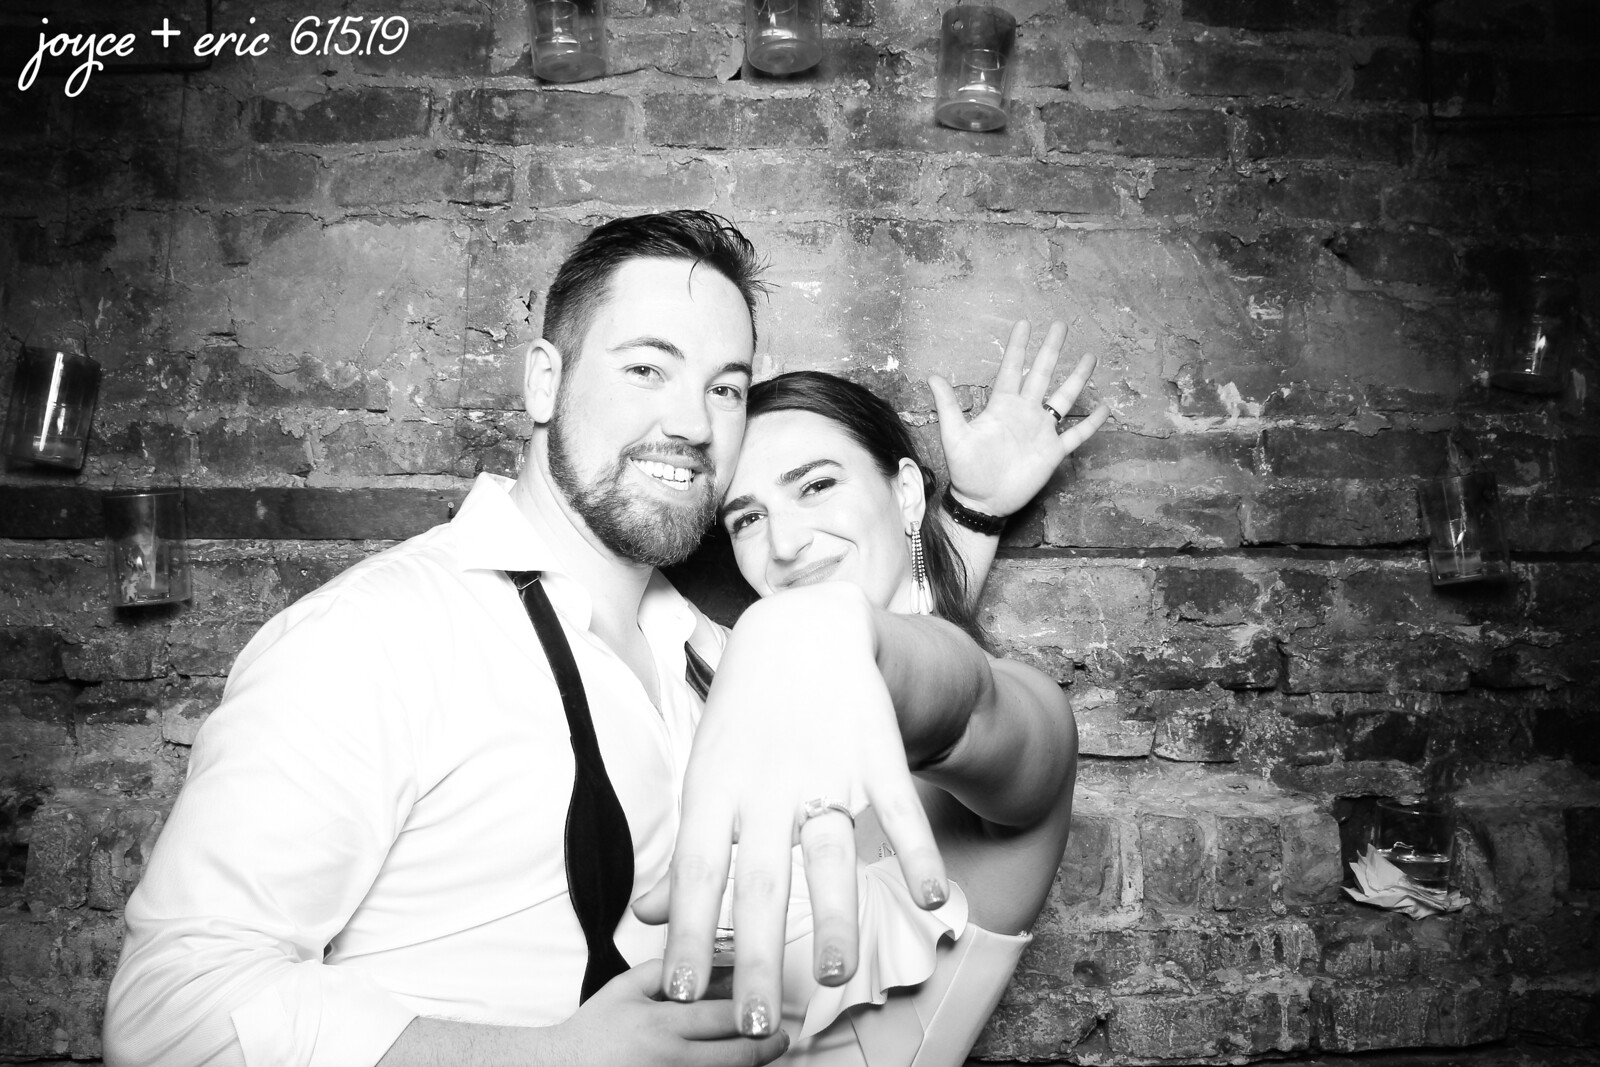 Chicago_Vintage_Wedding_Photobooth_New_Leaf_28.jpg